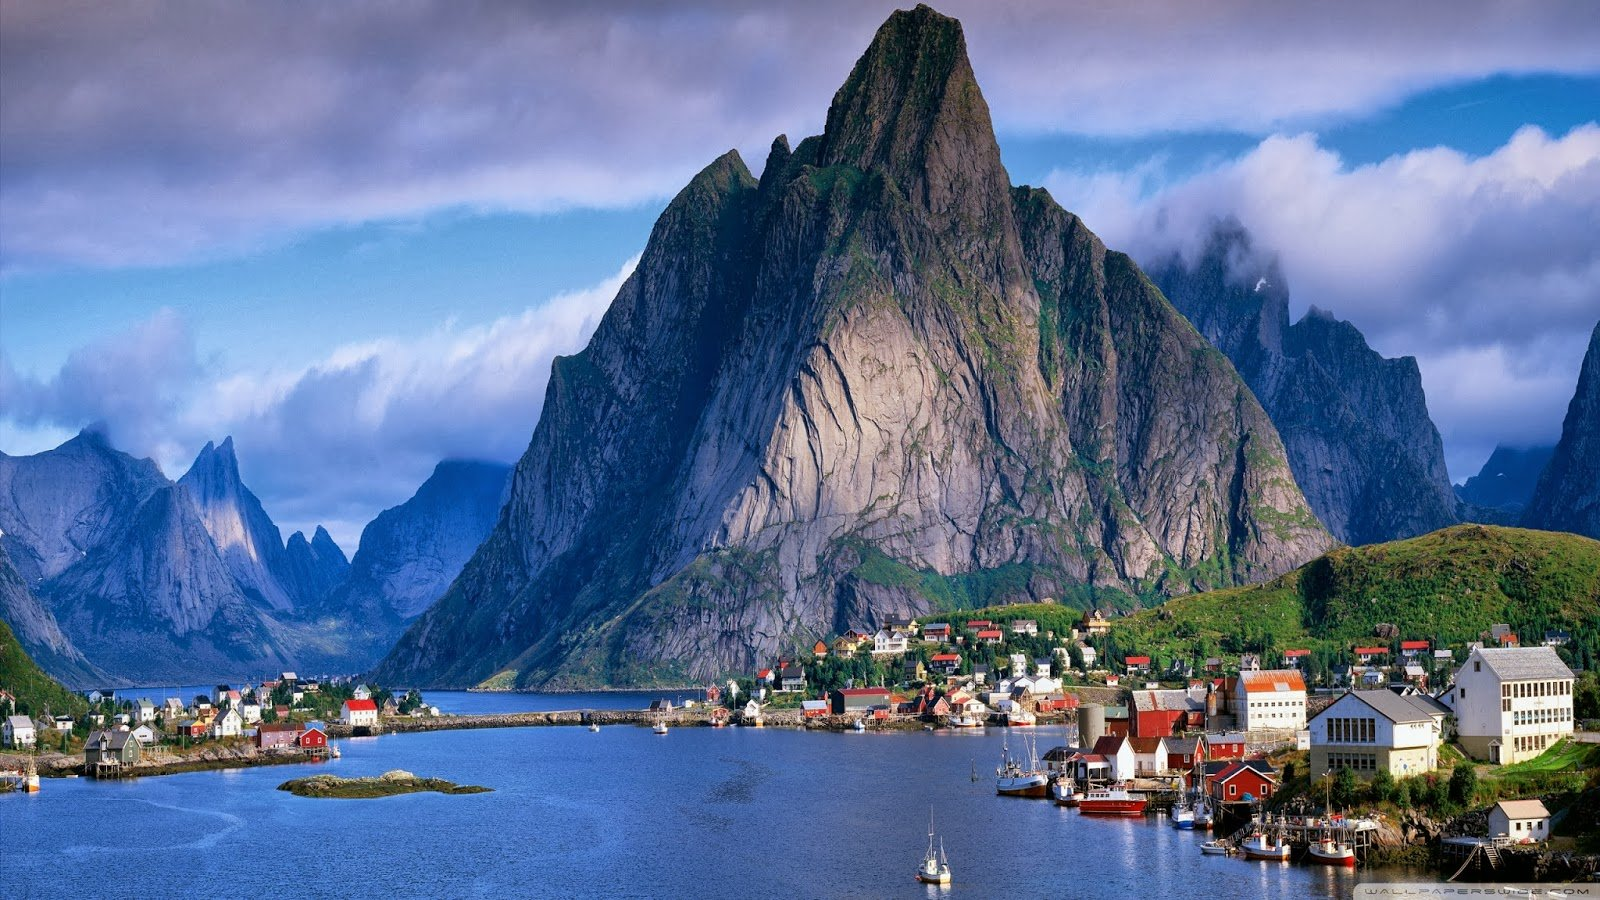 Wallpapers World Norway Scenery 2560 x 1440 HD Wallpaper 1600x900